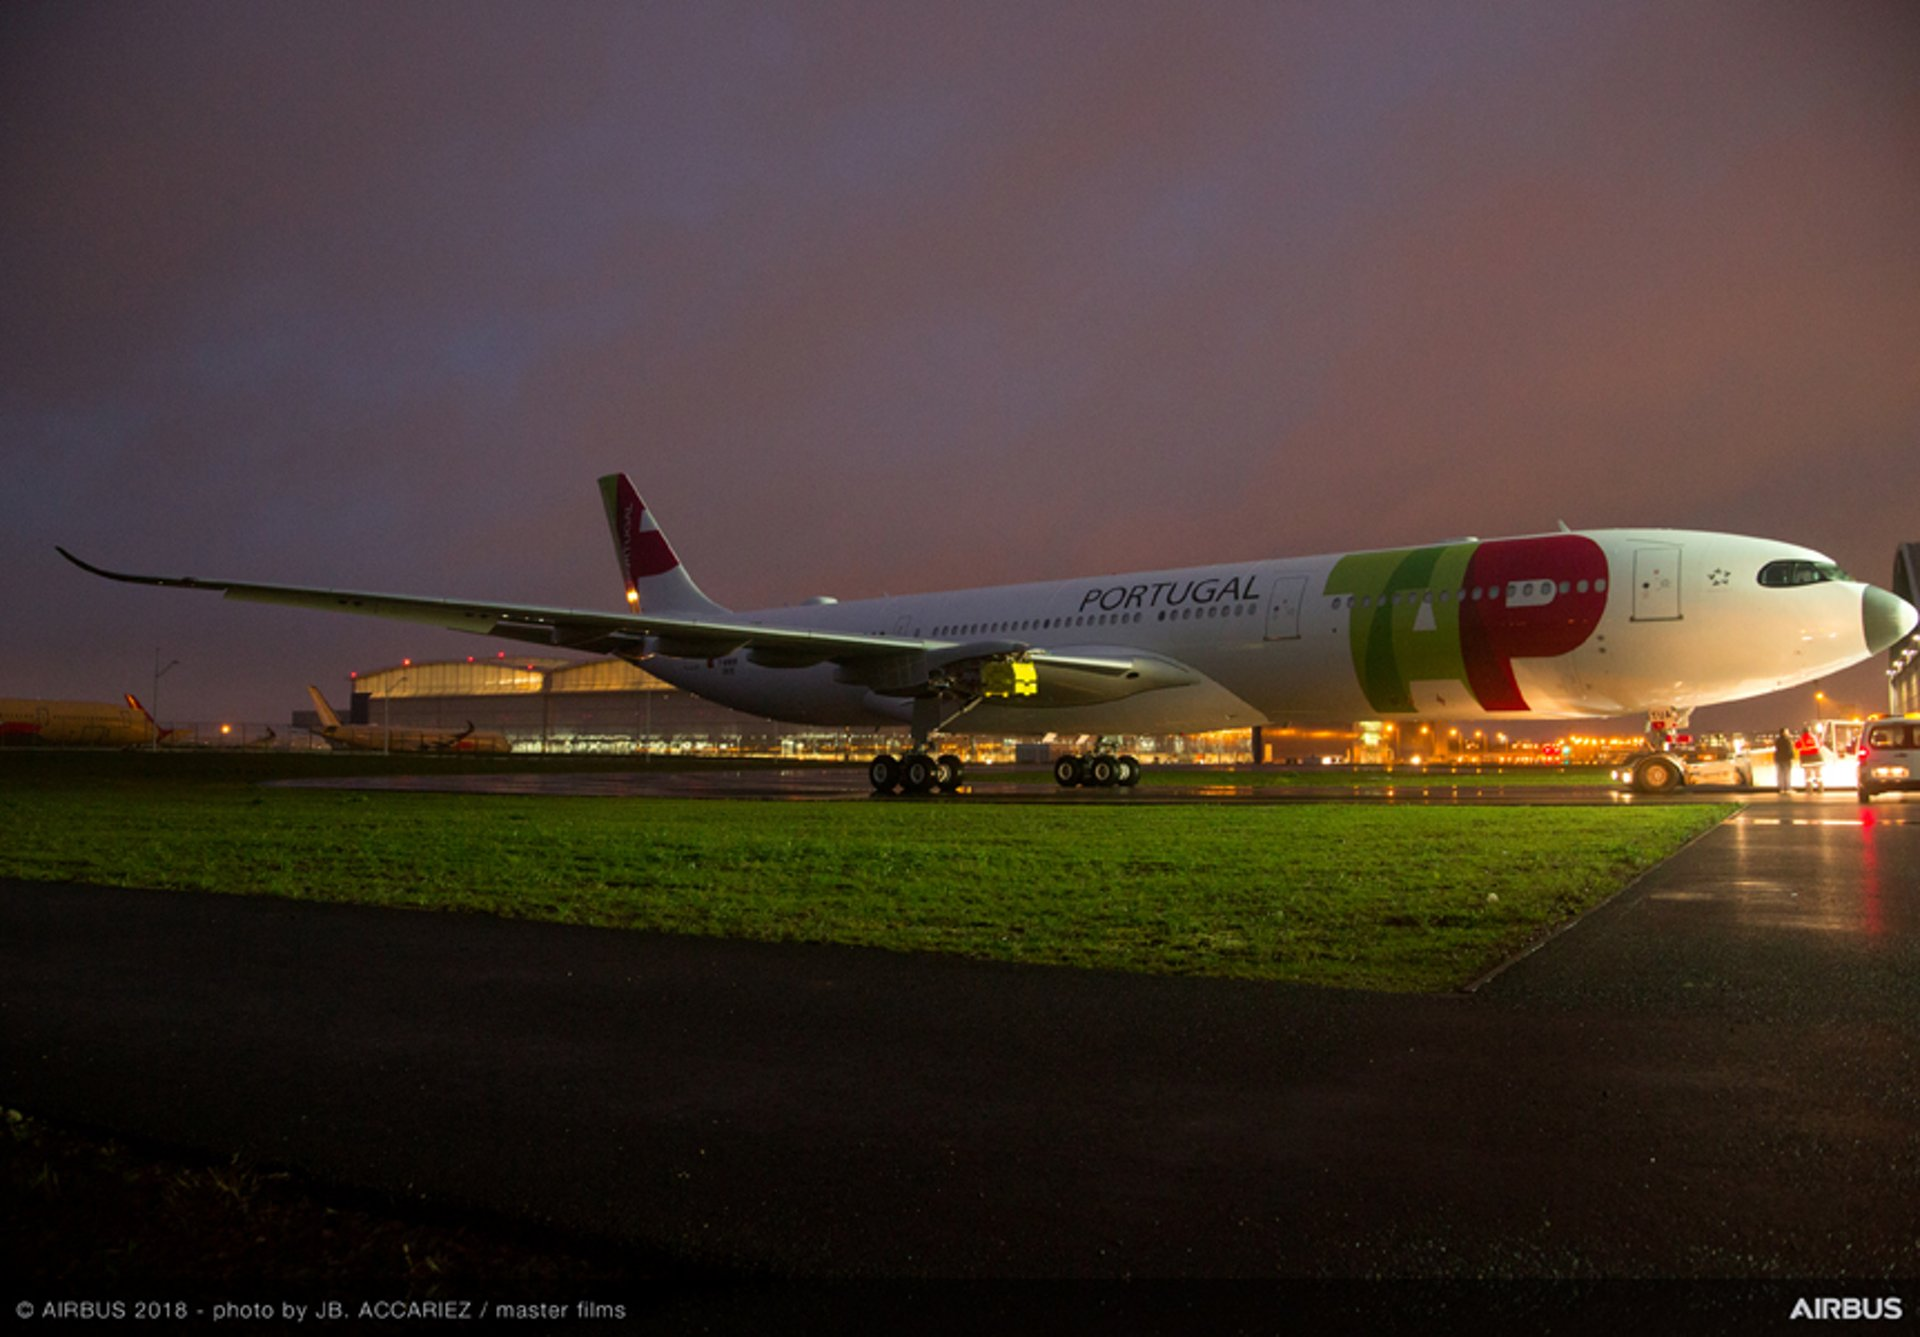 One of TAP Air Portugal's initial two A330neo jetliners rolls out of the paint shop in the red and green livery of this launch operator for Airbus' newest A330 variant